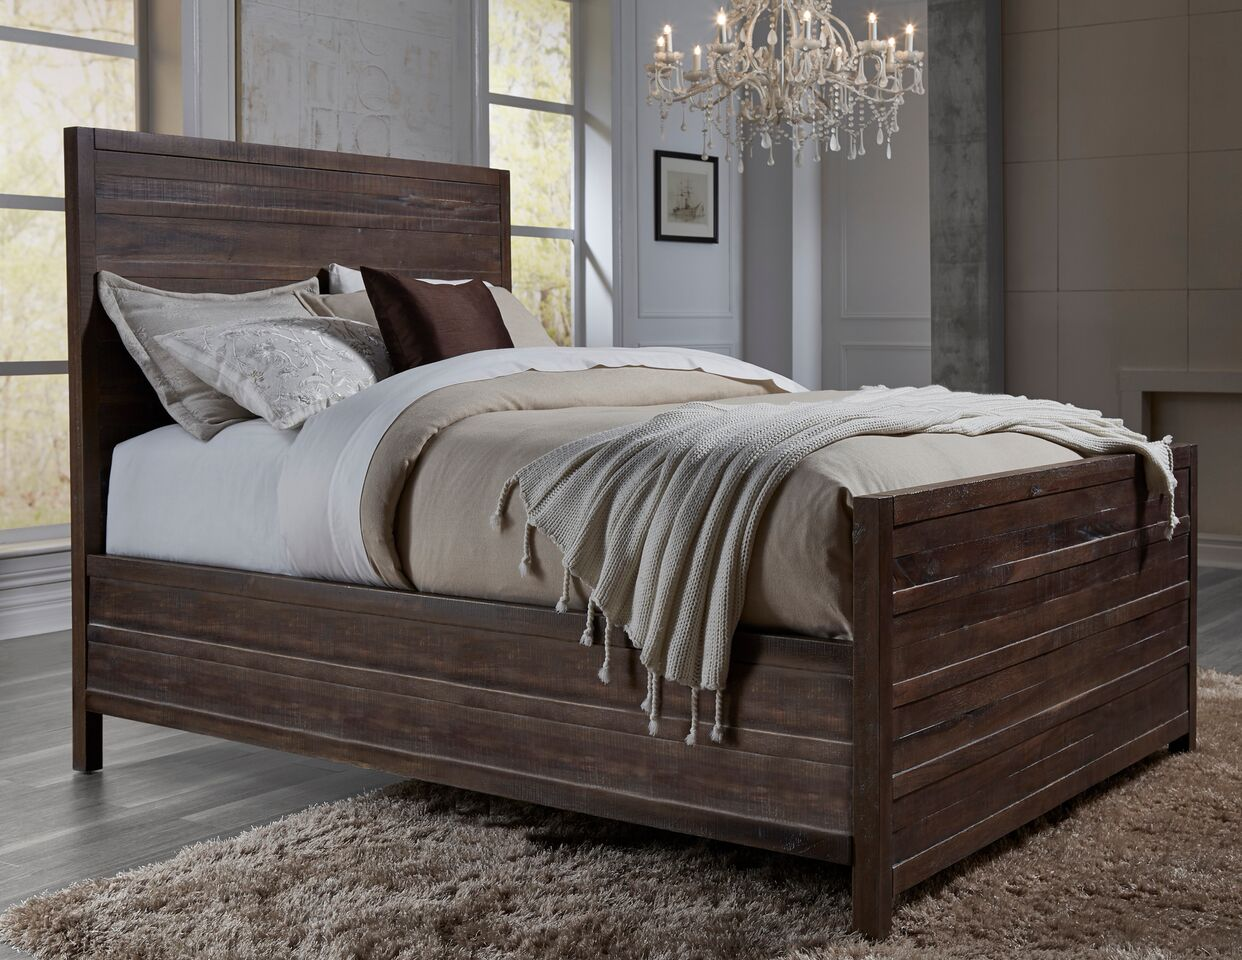 townsend solid wood panel bed by modus usa furniture online. Black Bedroom Furniture Sets. Home Design Ideas